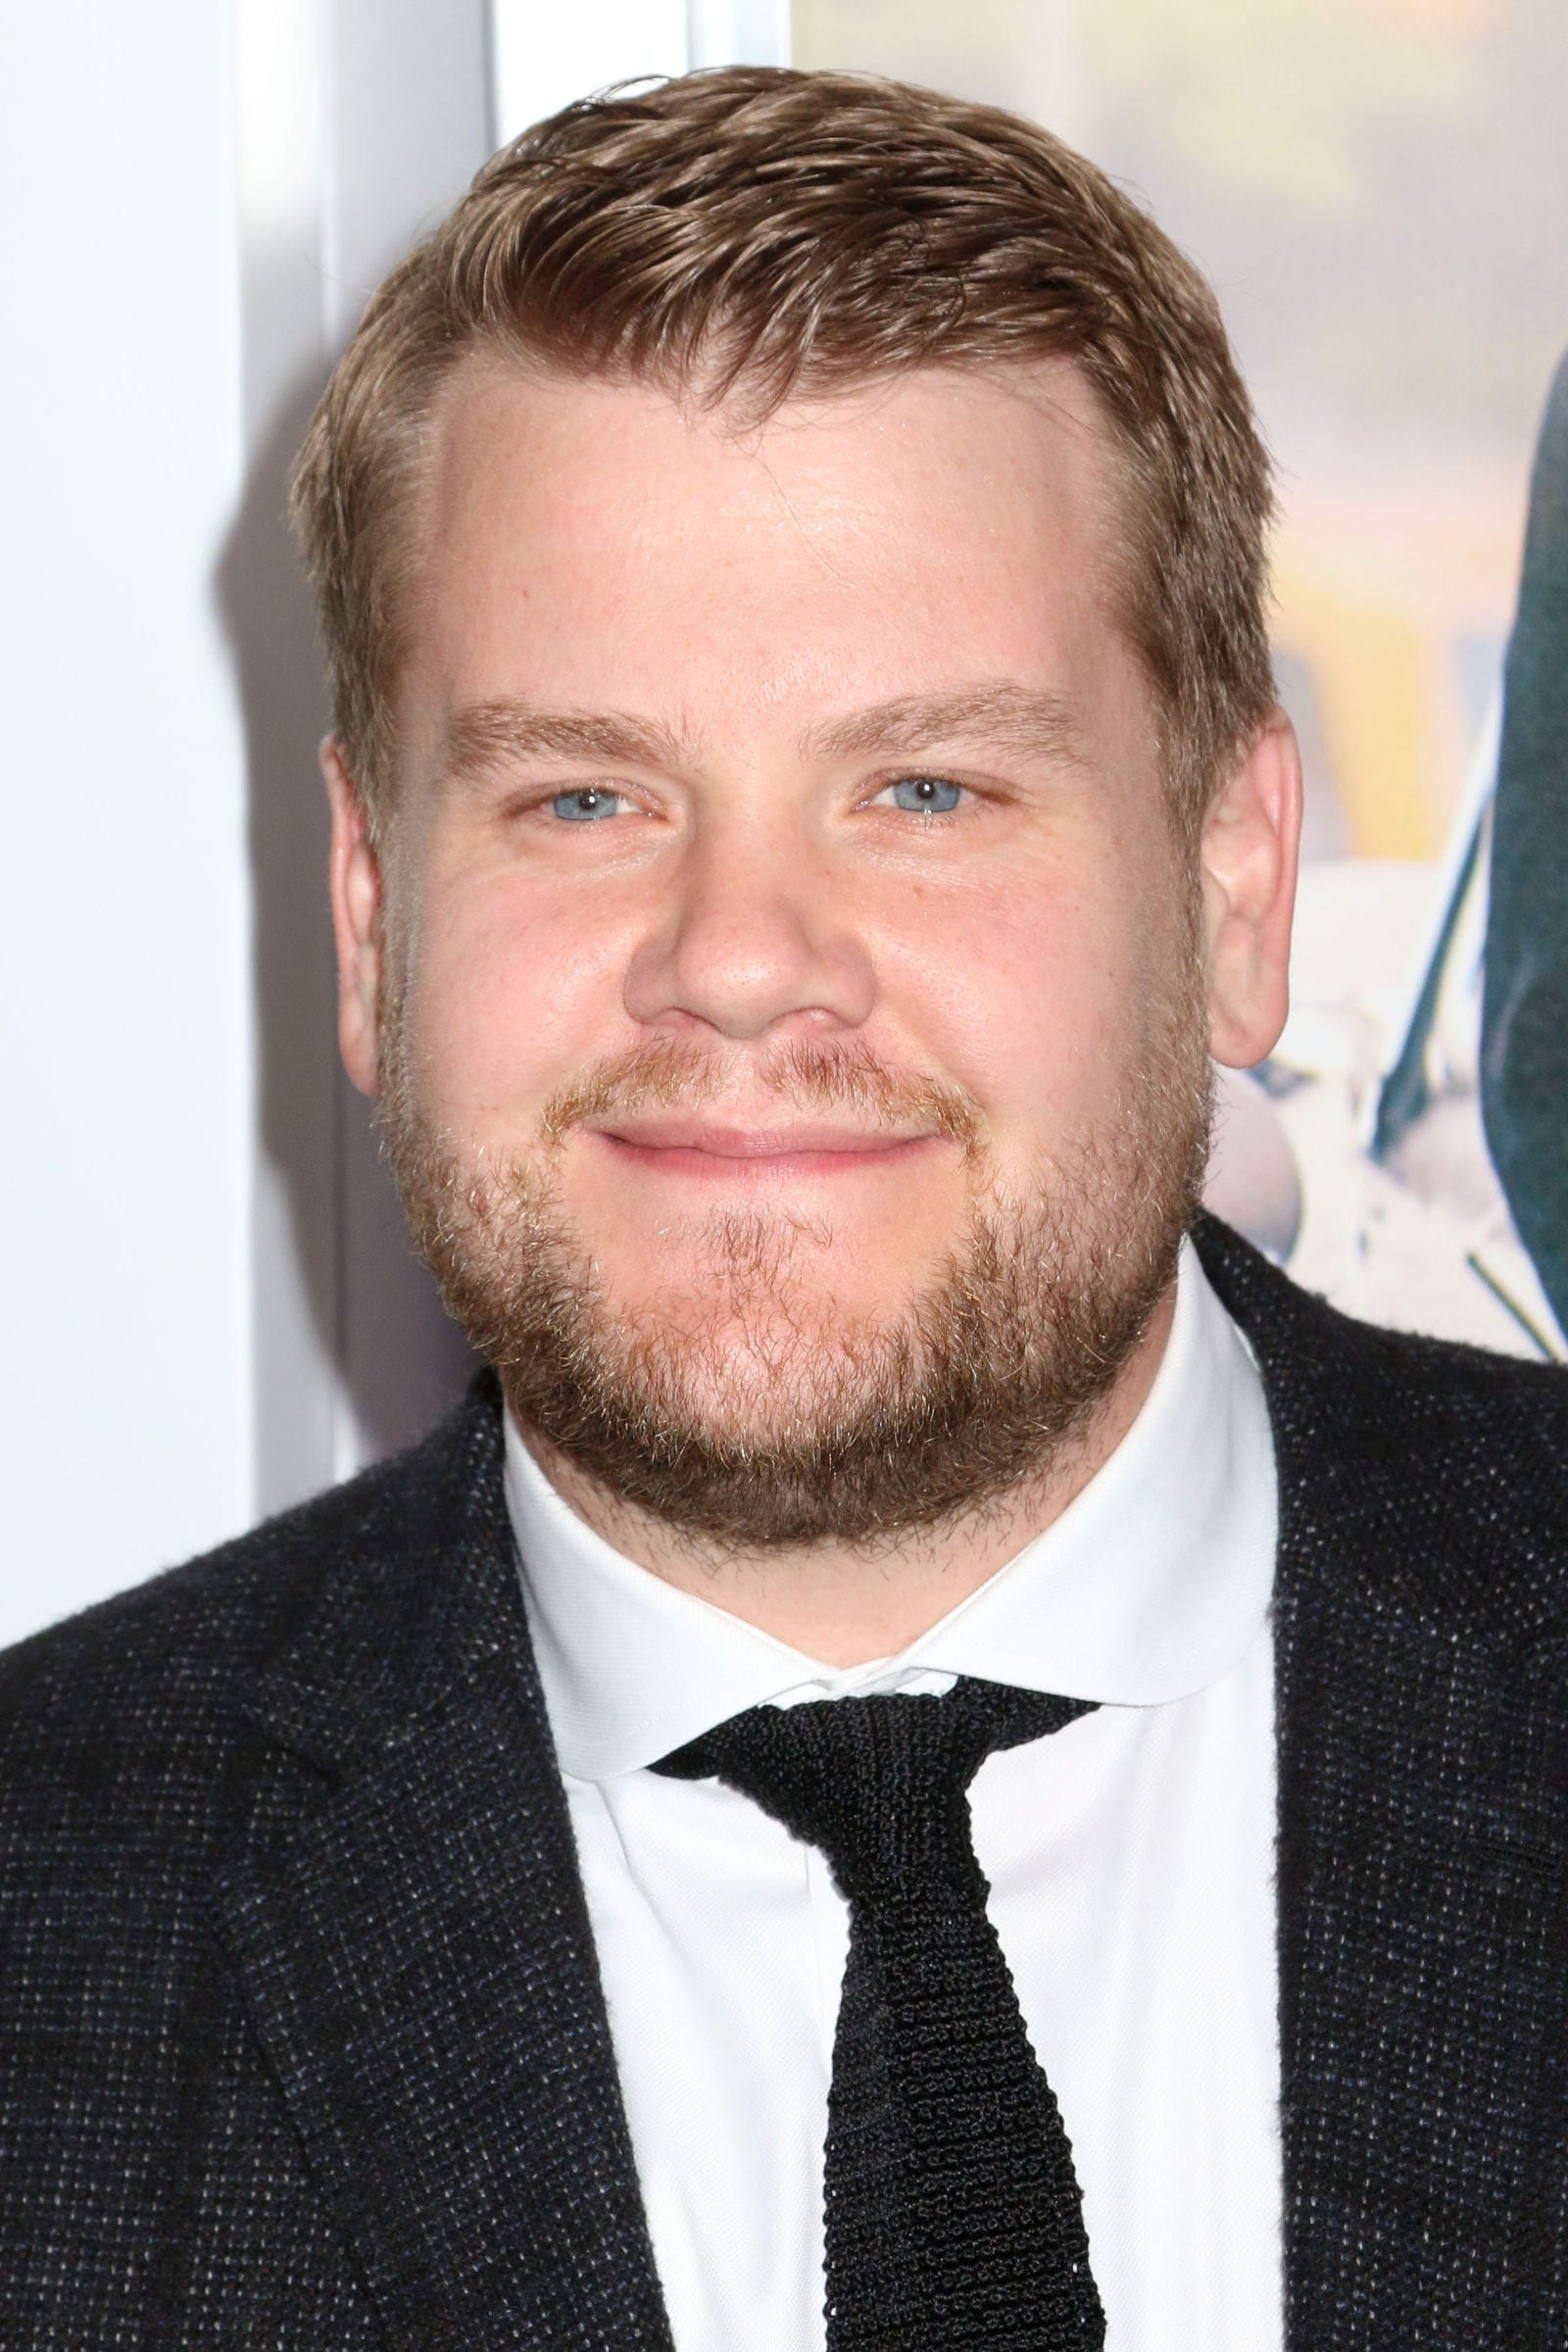 James Corden brushed up comb over by JStone